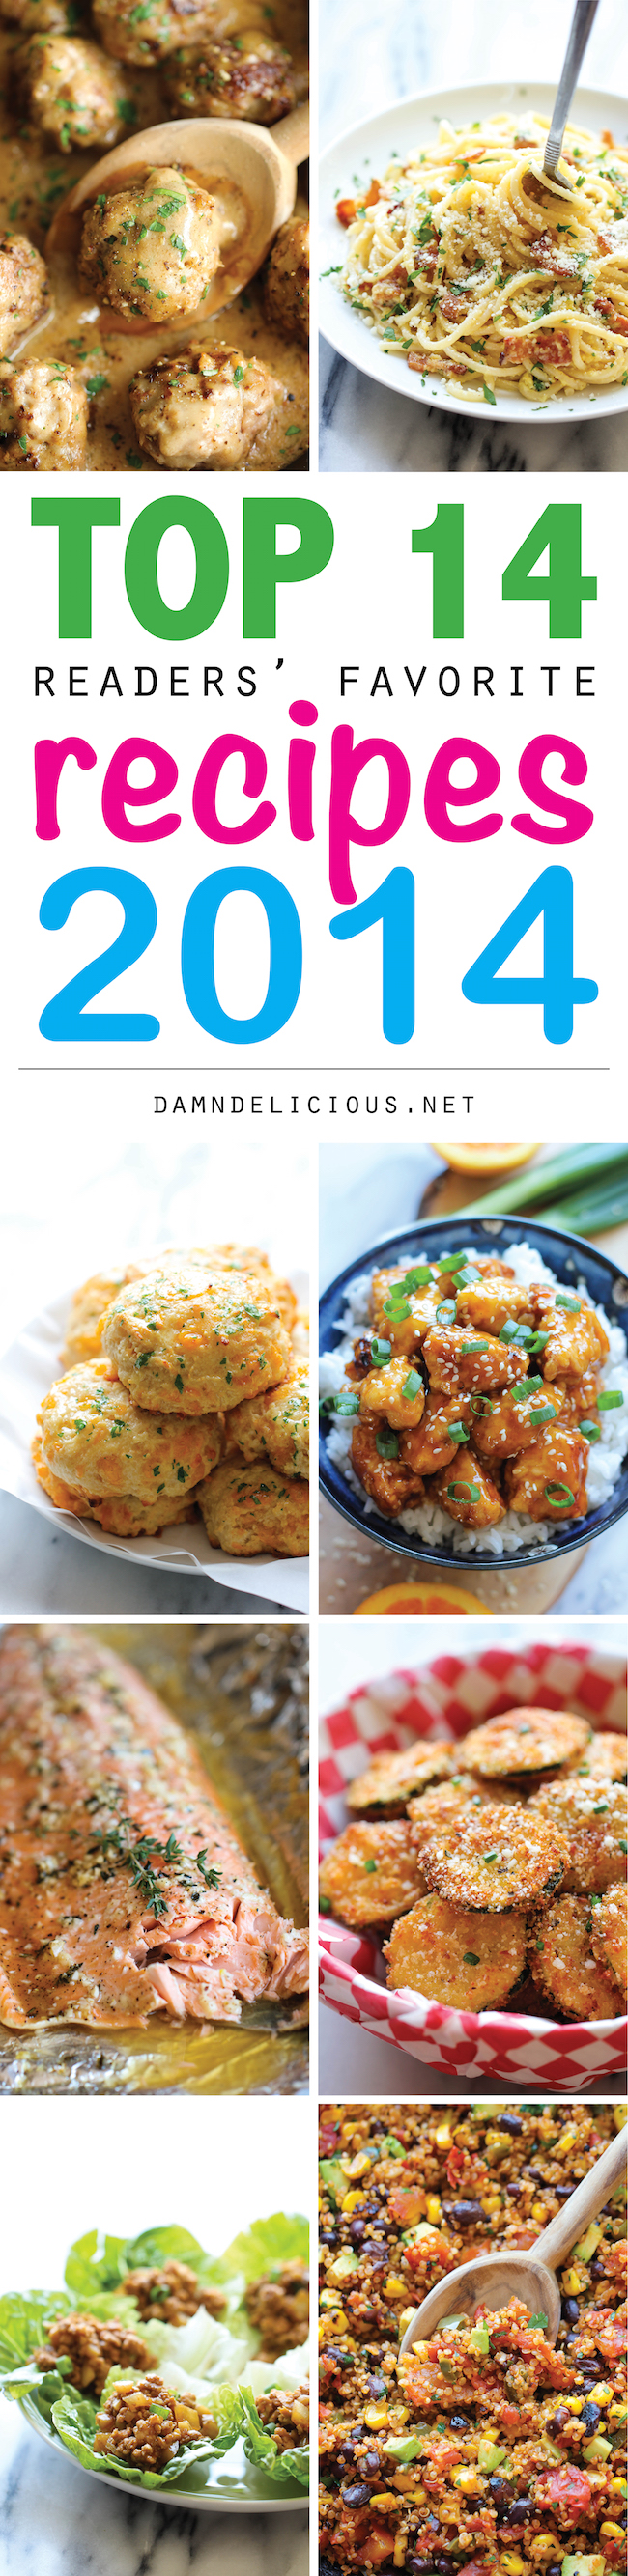 Top 14 Recipes of 2014 - From the teriyaki salmon to the parmesan zucchini, these recipes are the best of the best from 2014!